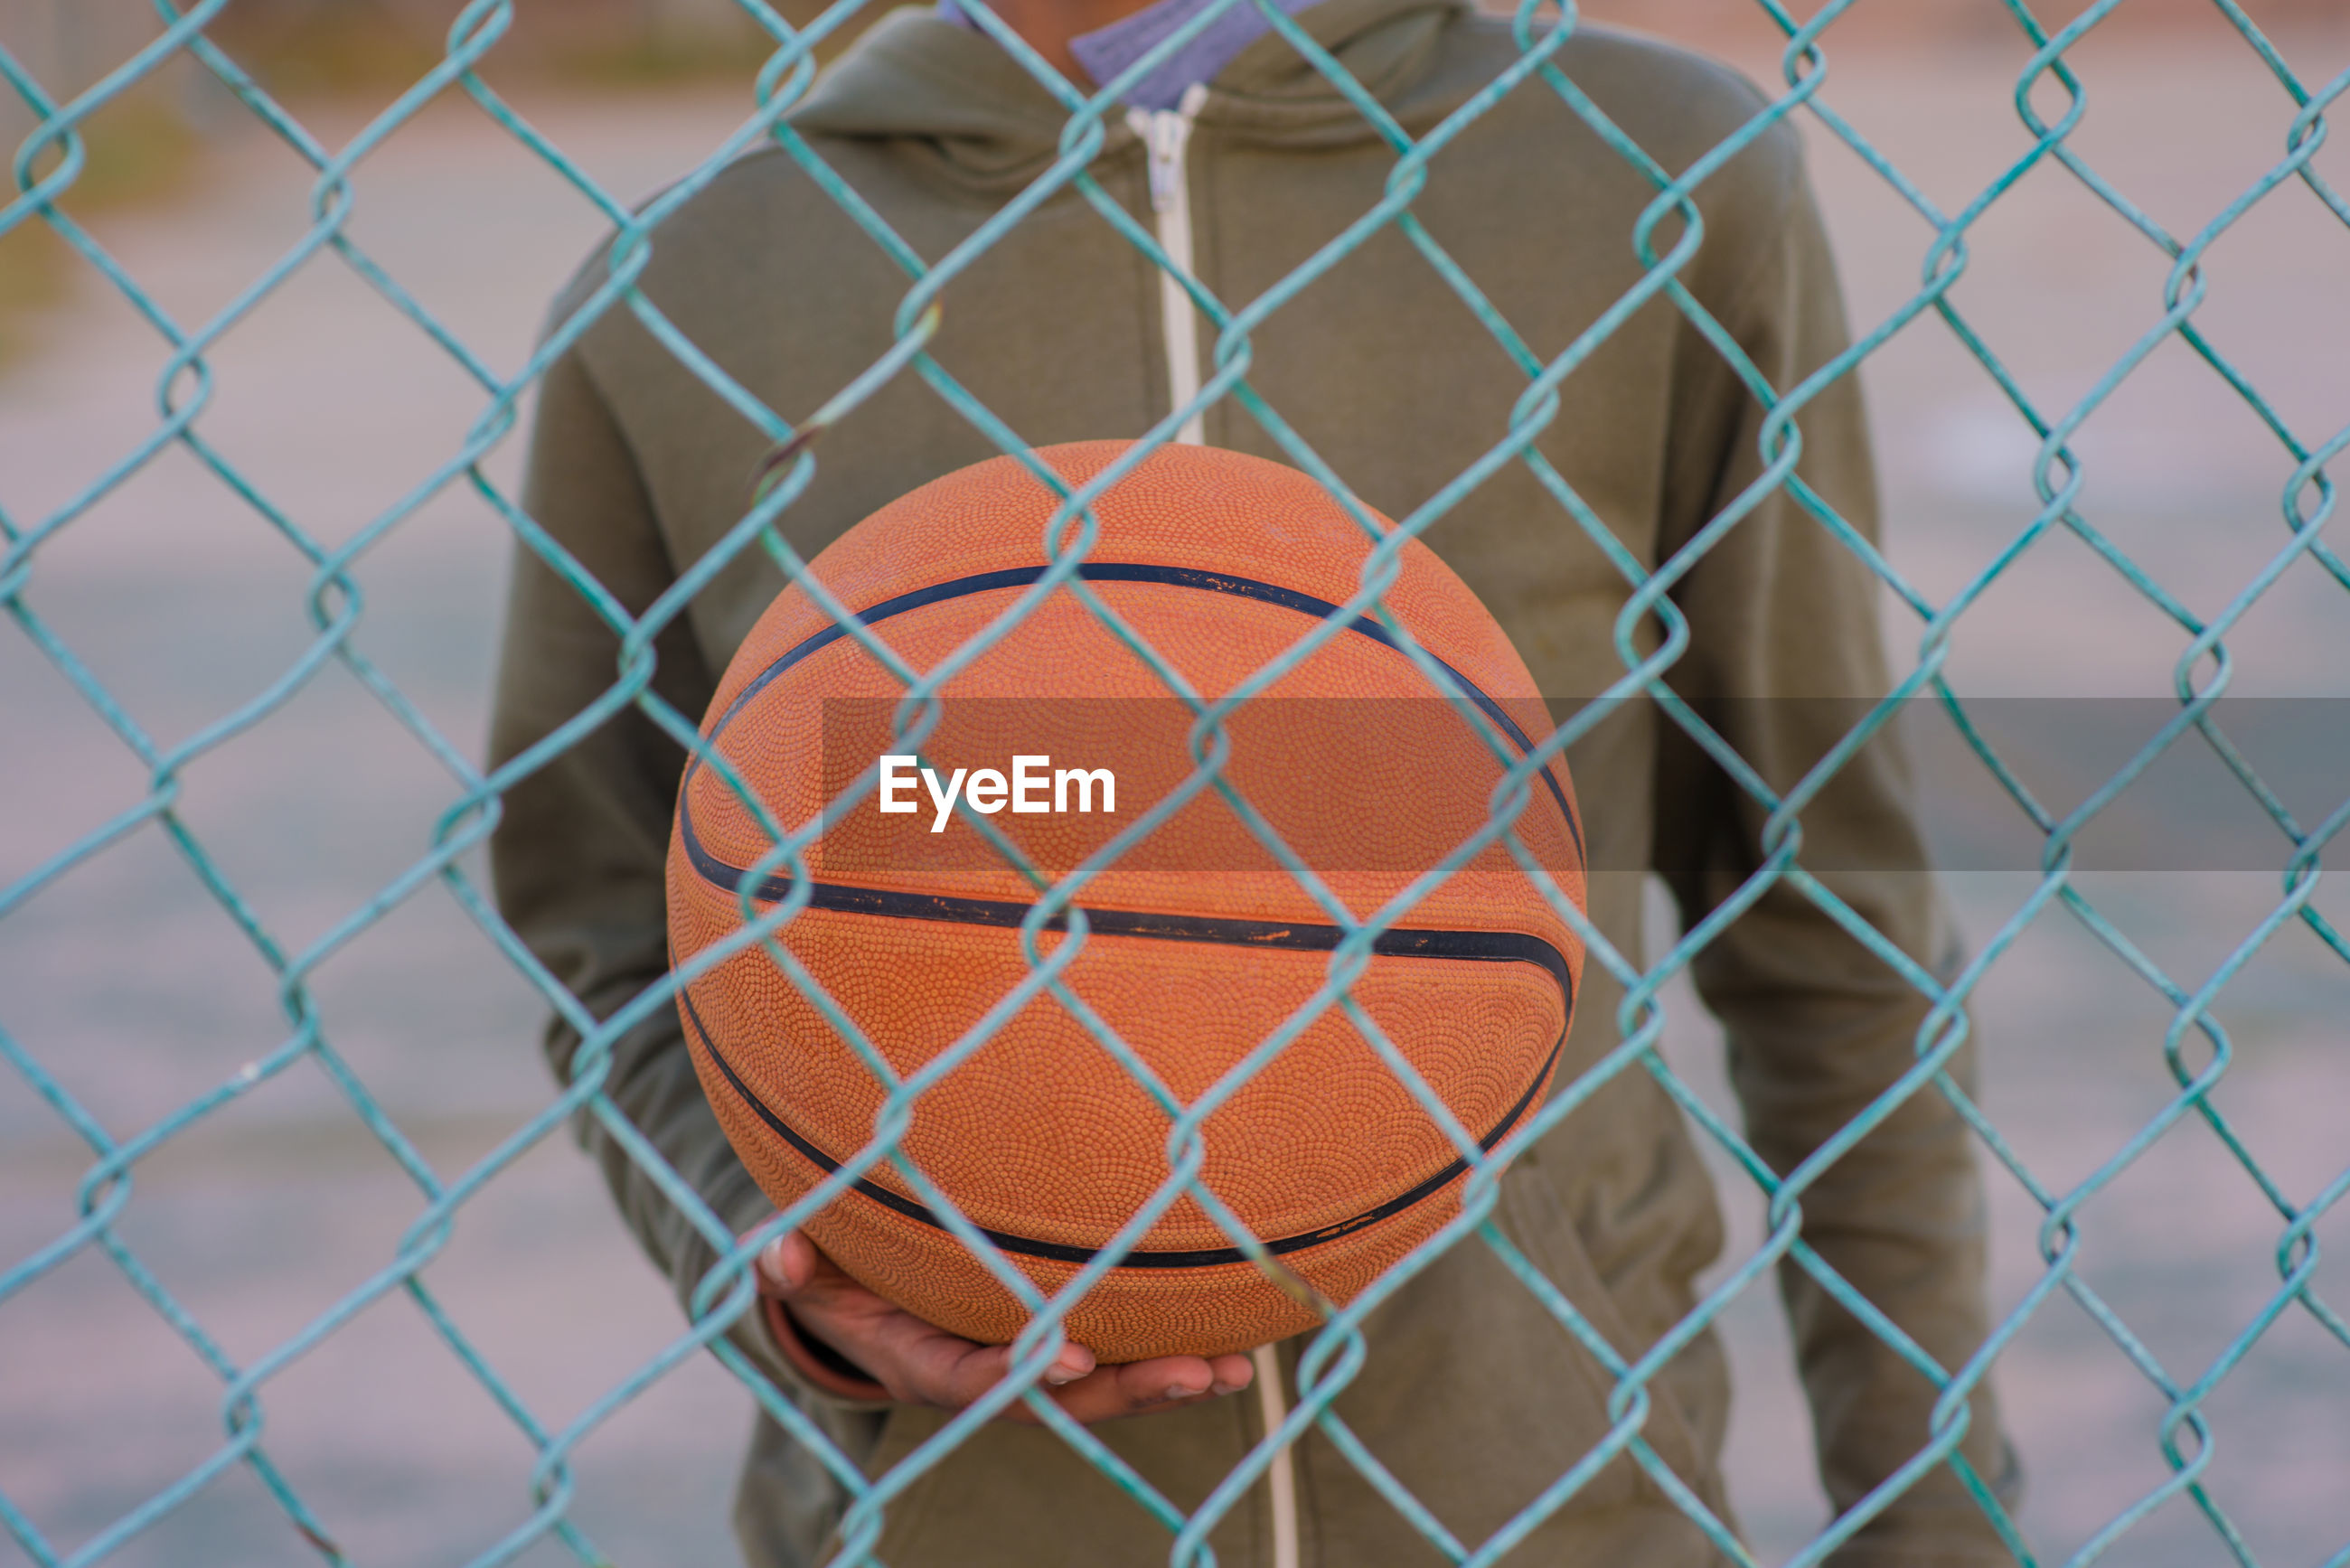 Midsection of boy holding ball while standing on basketball court seen though chainlink fence